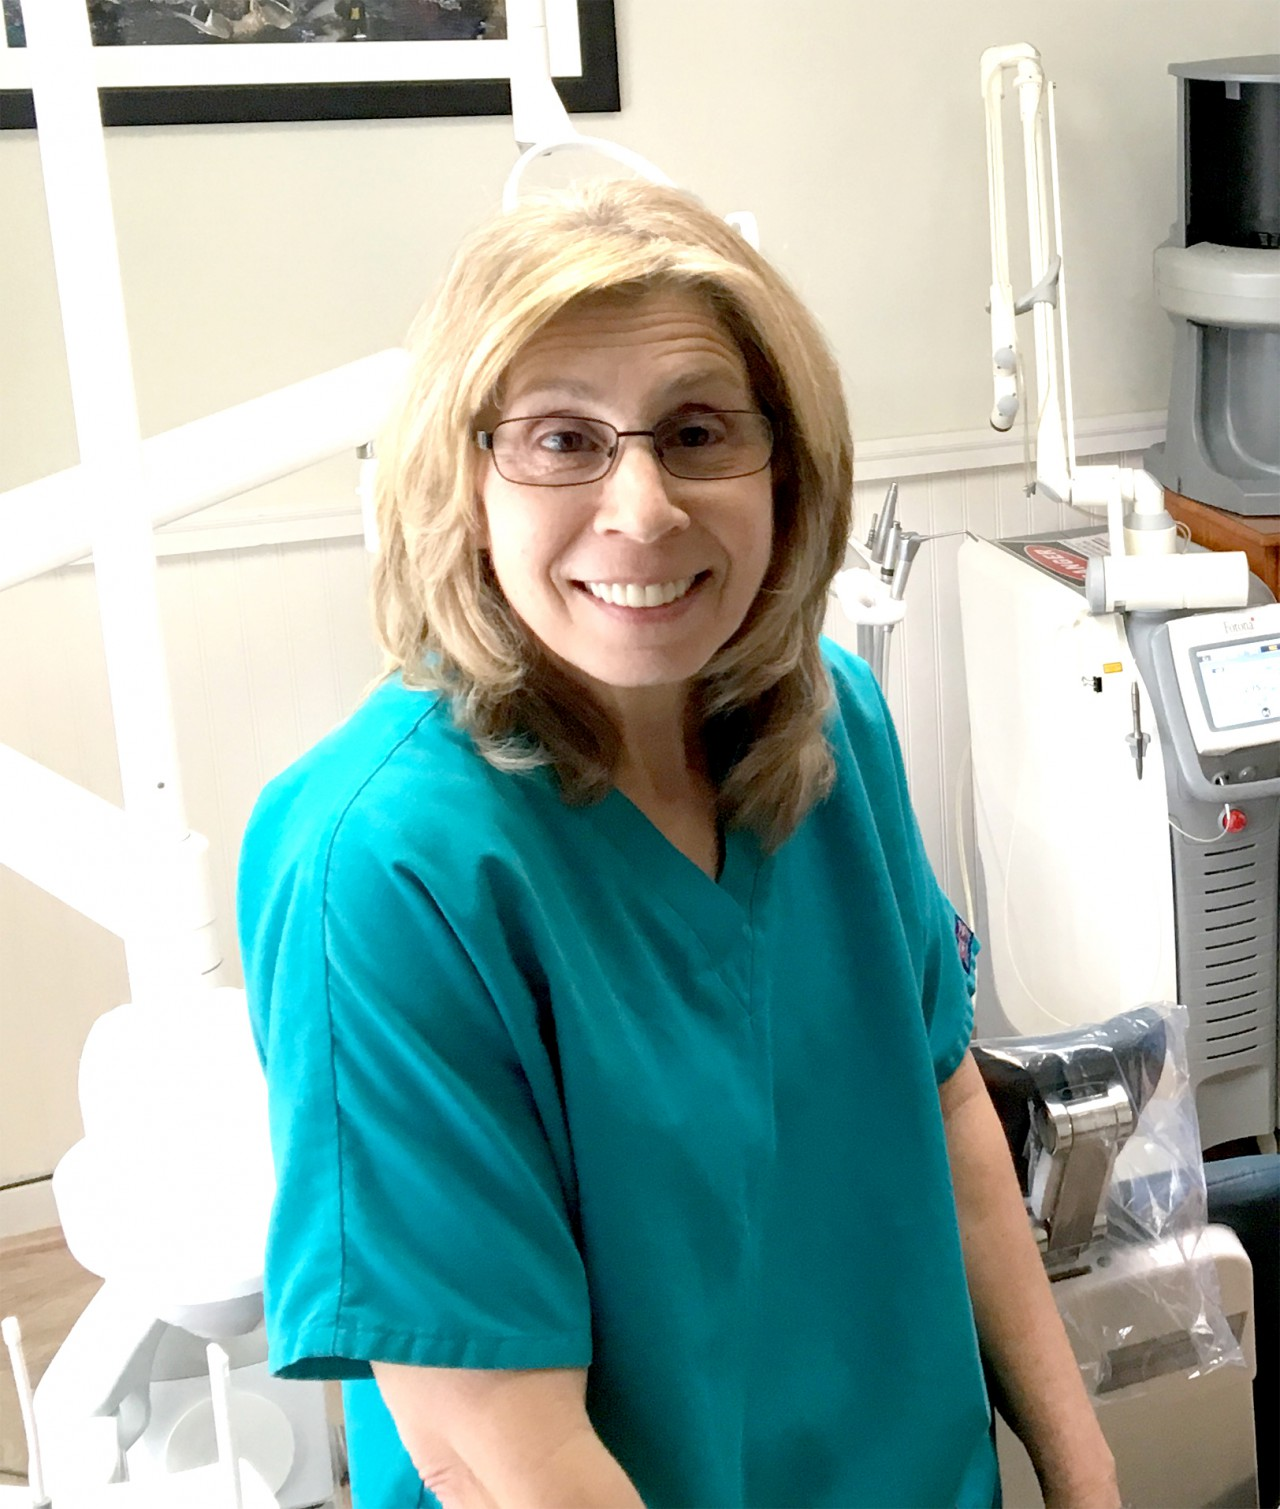 Debbie is Westhampton Dental's Office Manager and Dr. Eric's Assistant.